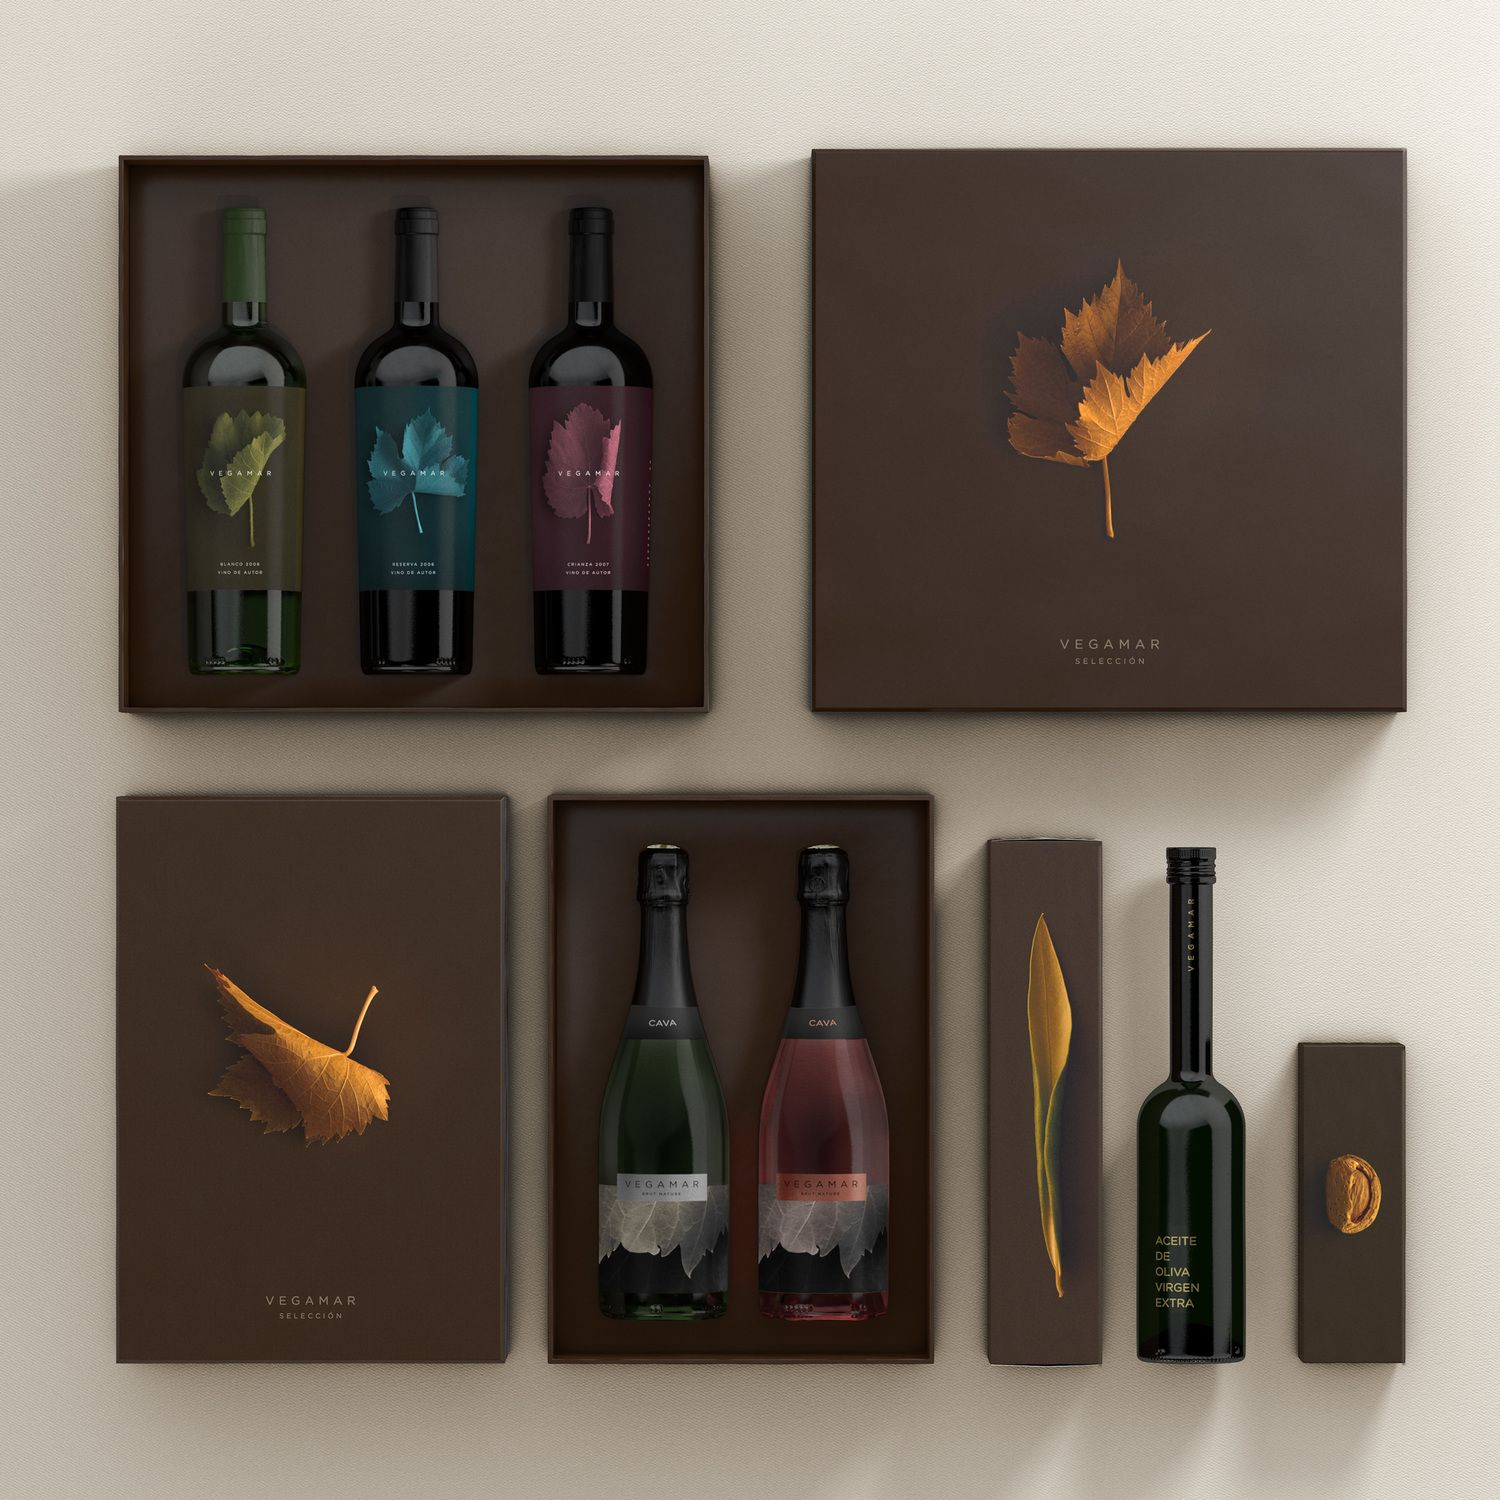 Vegamar Seleccion: Gourmet food & wine — The Dieline